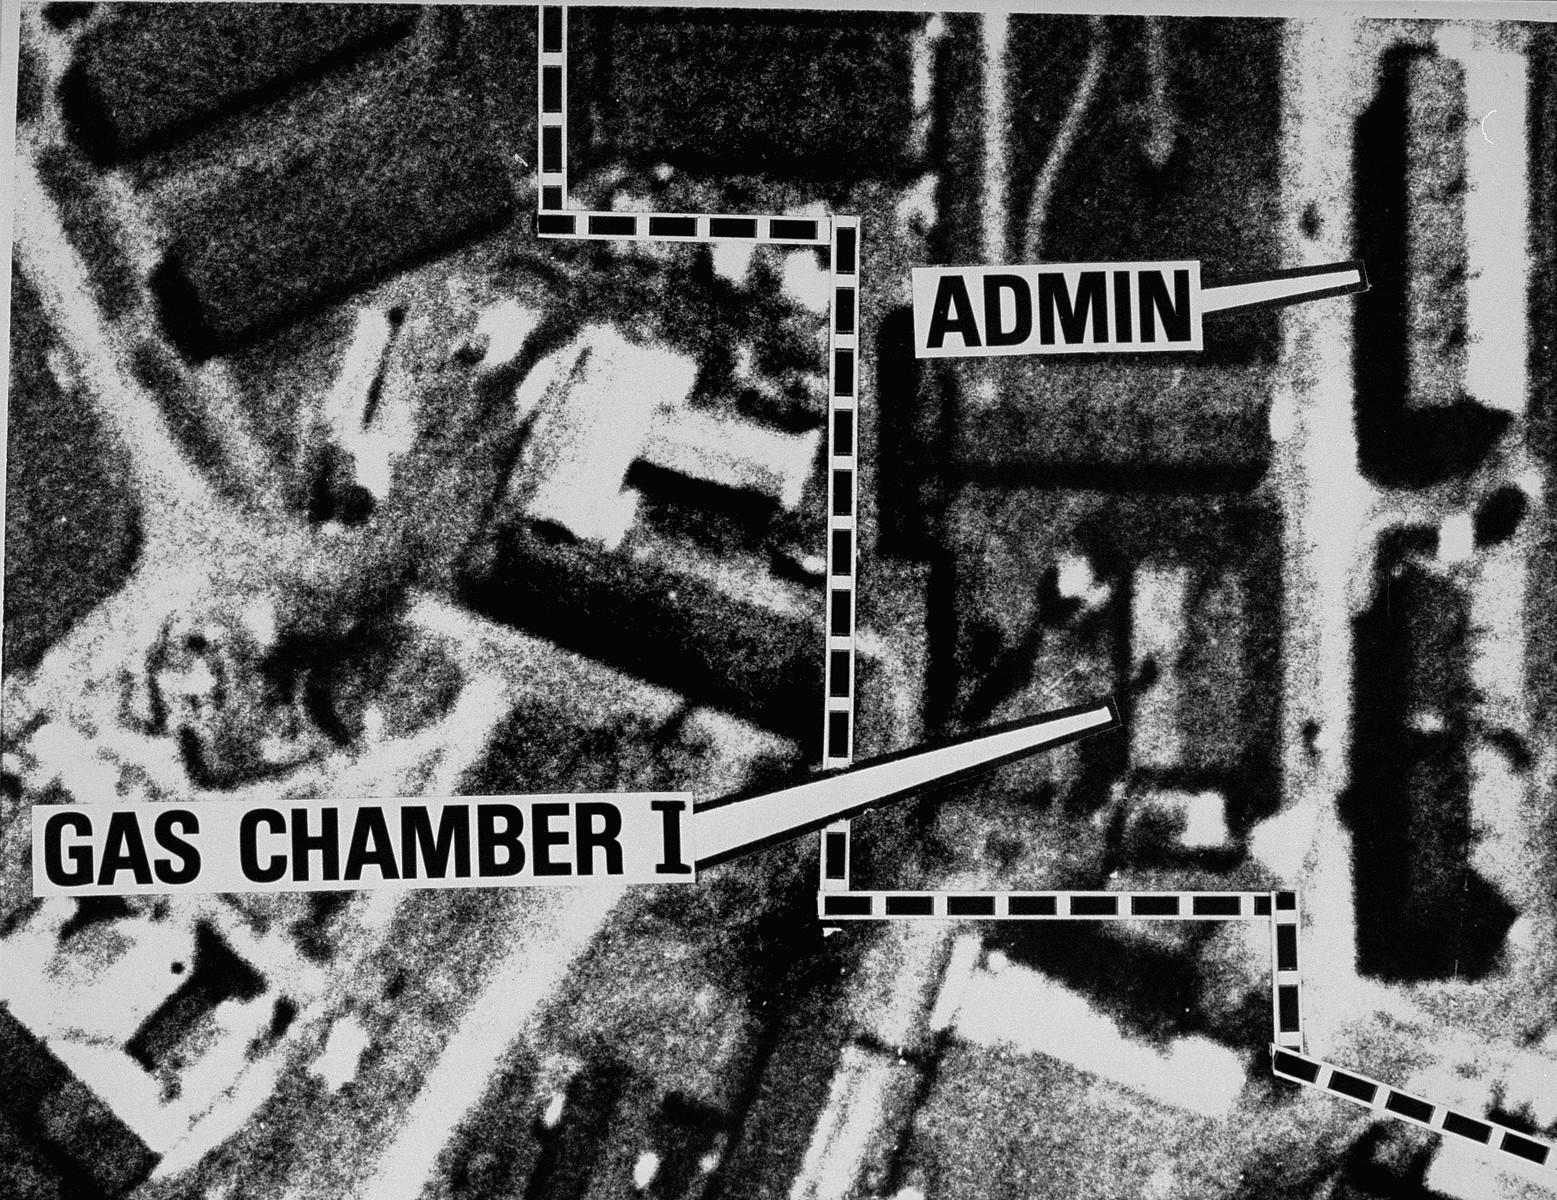 An enlarged aerial reconnaissance photograph of  Auschwitz I  showing the administration building and gas chamber.